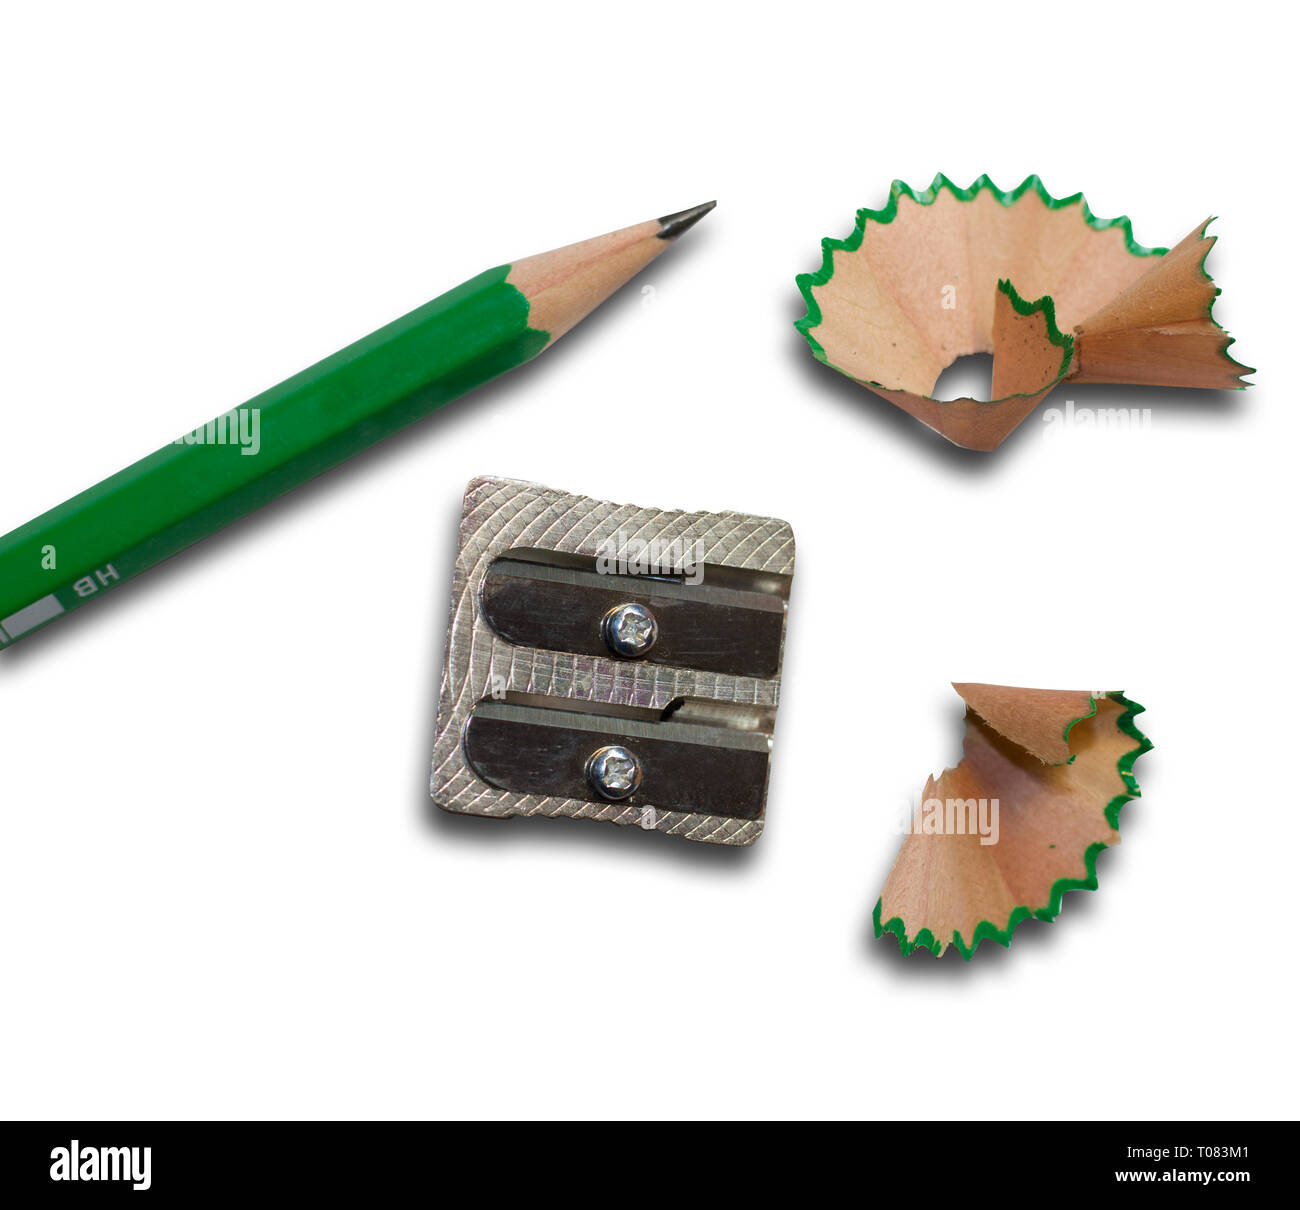 A pencil and a sharpener with pencil shavings - Stock Image